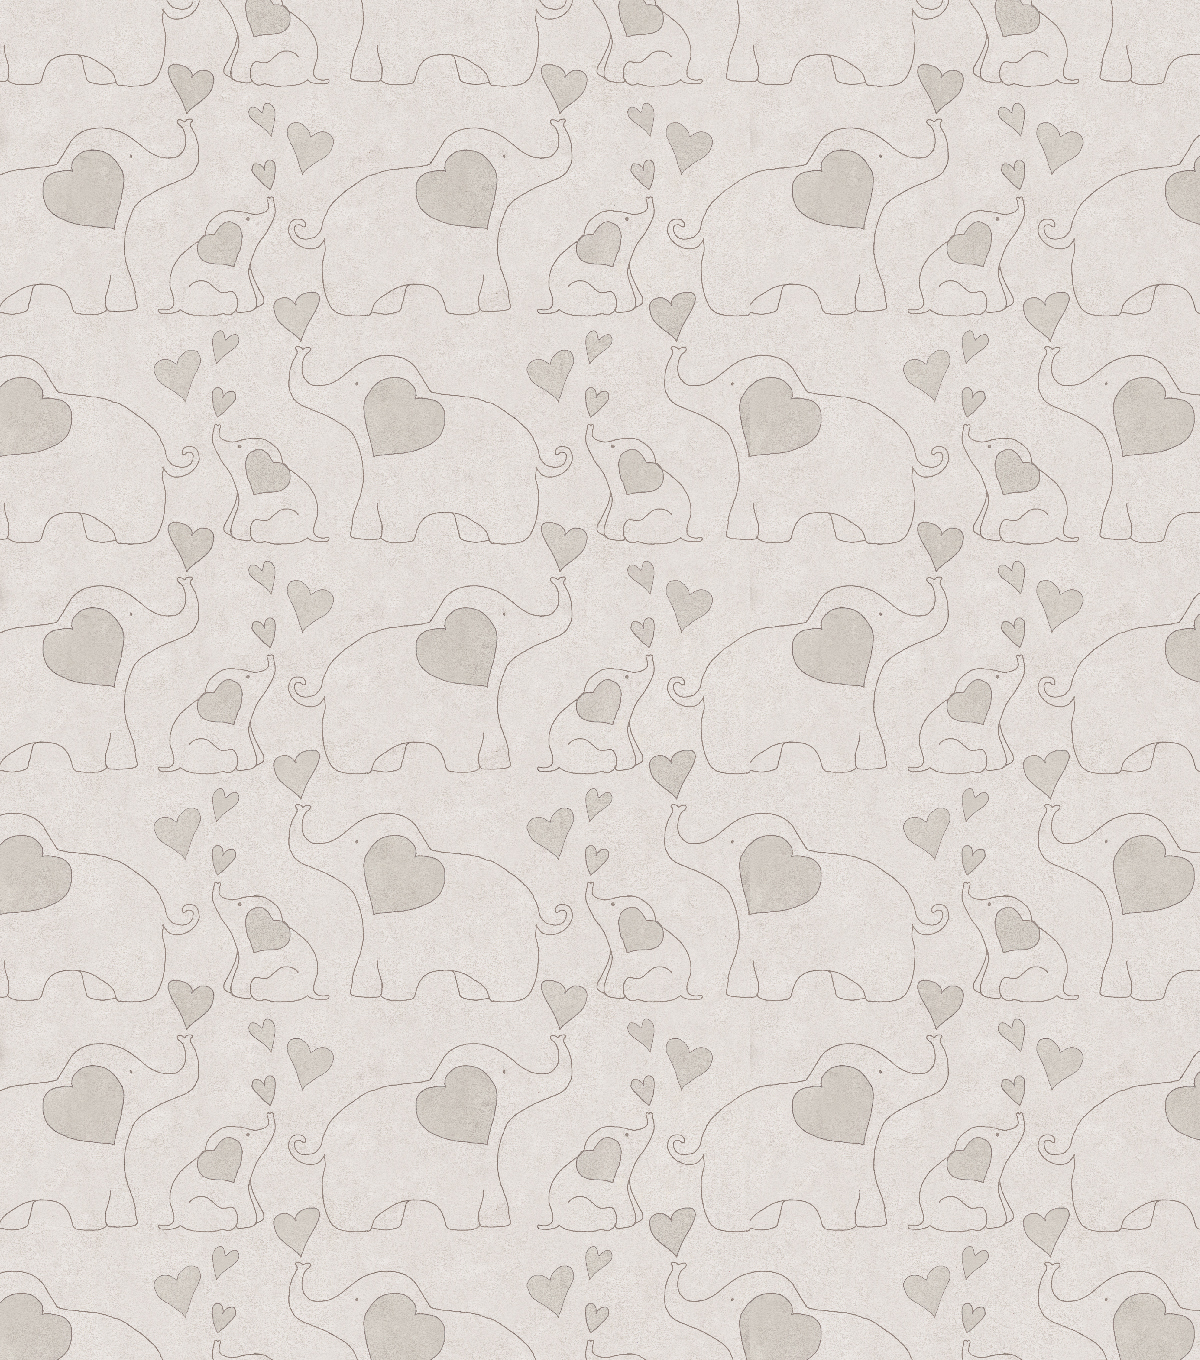 Nursery Cotton Fabric-Elephants Gray